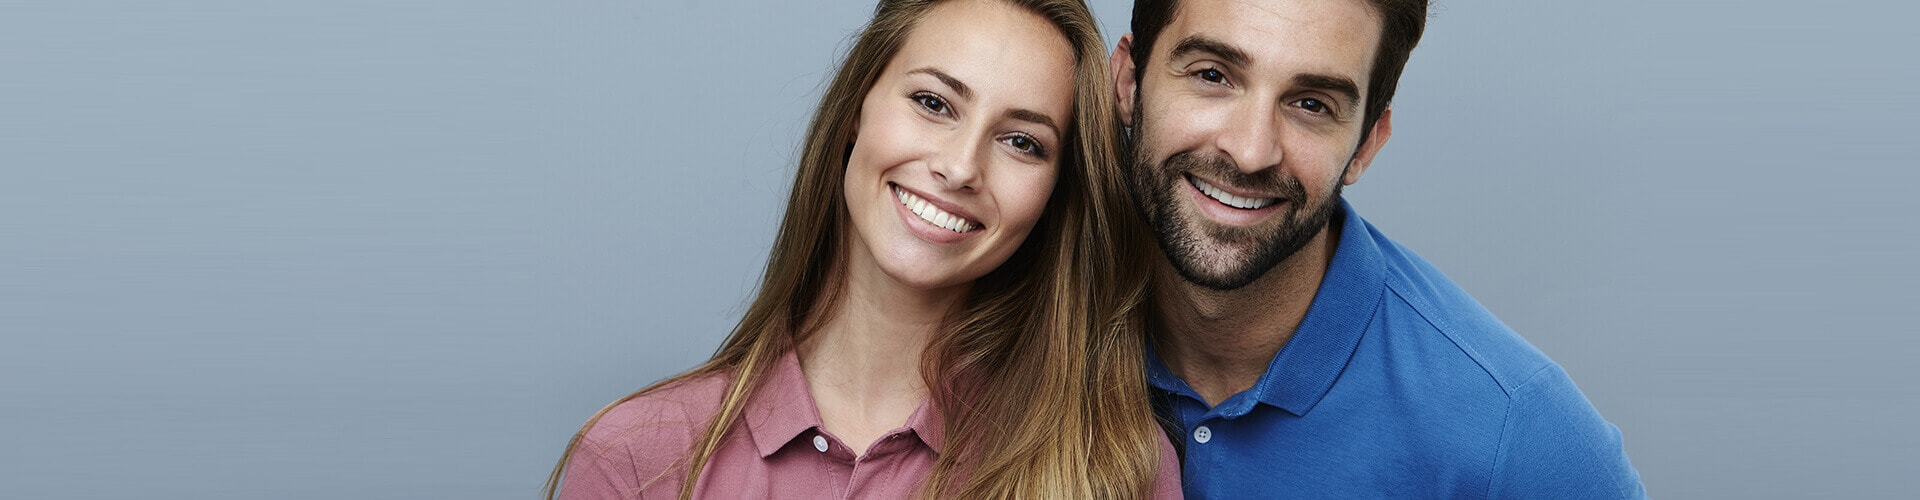 Smiling Young Woman and Man